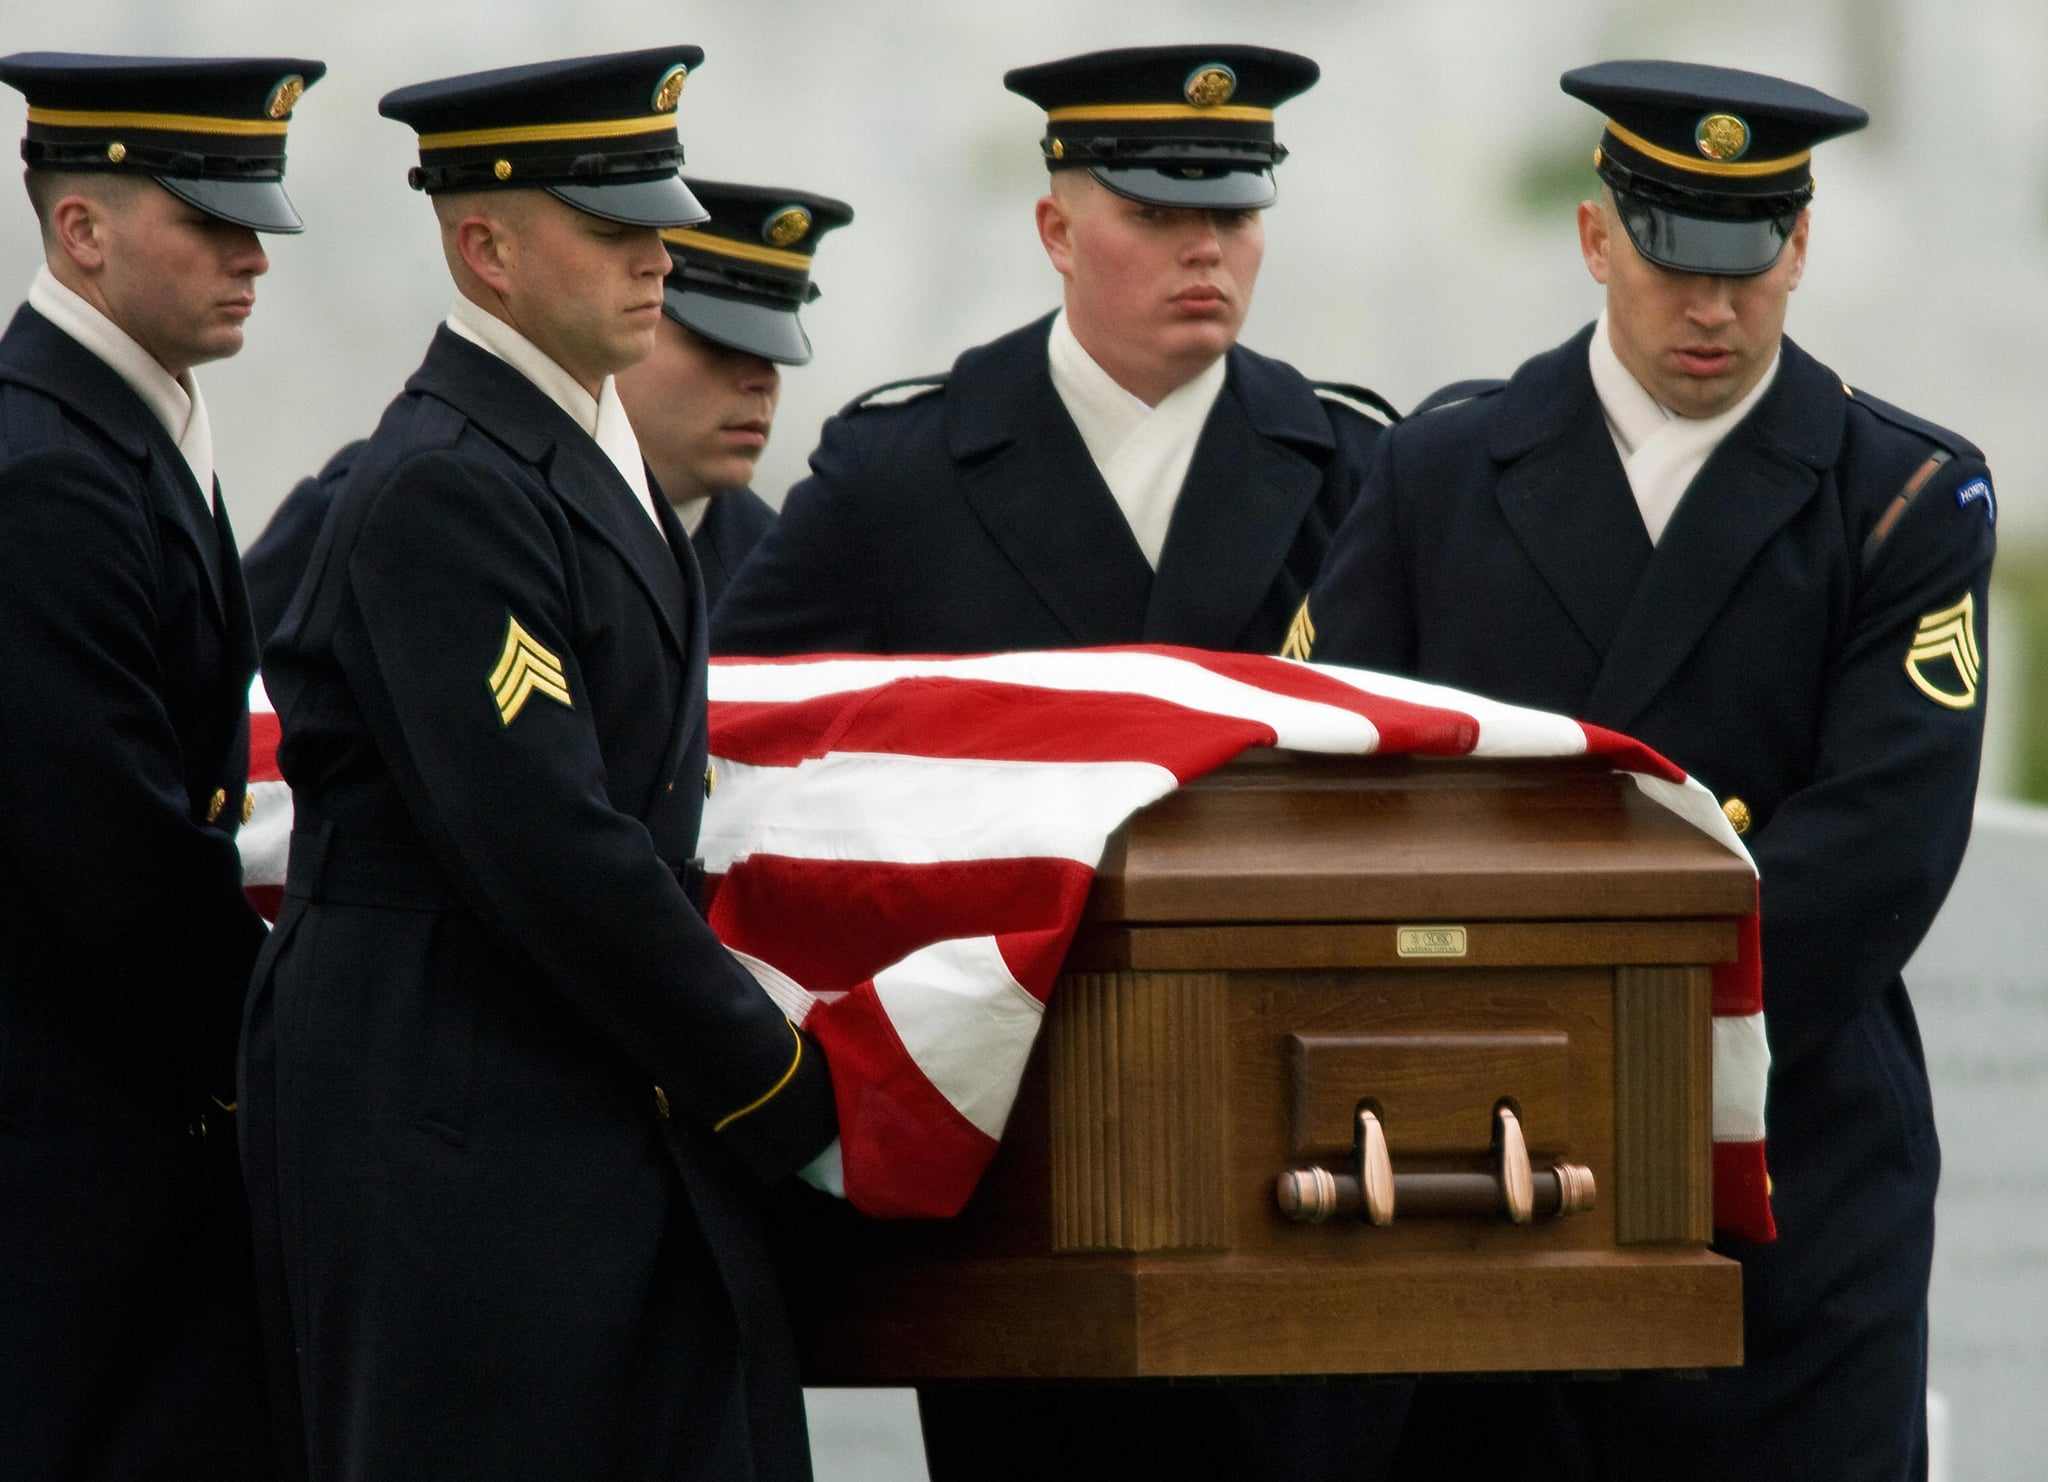 A US Army Honor Guard Casket Team carry the body of US Army Cpl. during funeral services in Arlington National Cemetery.